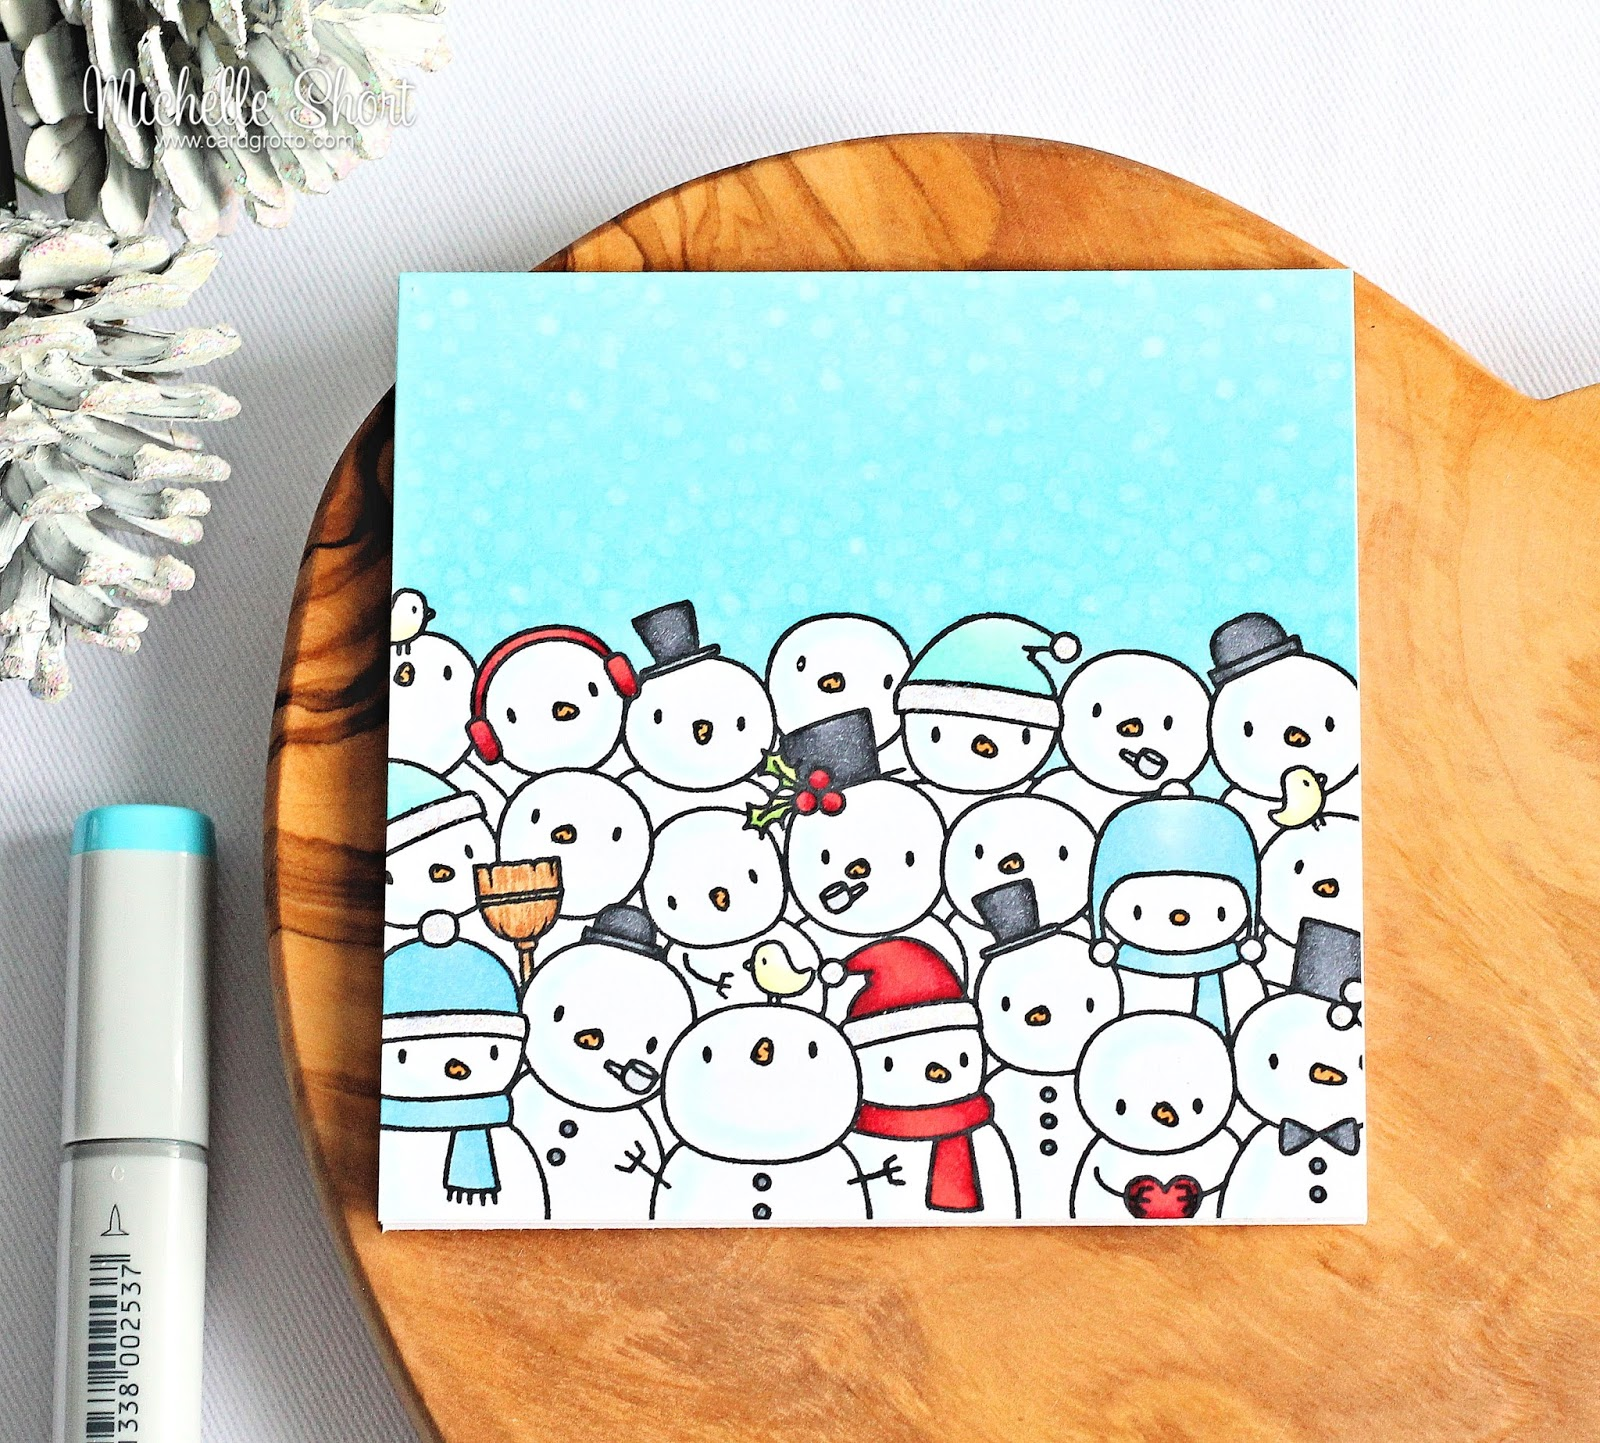 The Card Grotto 2017 Snowman Pen Refill Mr 7 For V 1 2 10 Mm Red 12 Pcs Pack Technically It Is Not A Christmas Gift Voucher An Electronic Code I Thought Would Like Nice To Add In